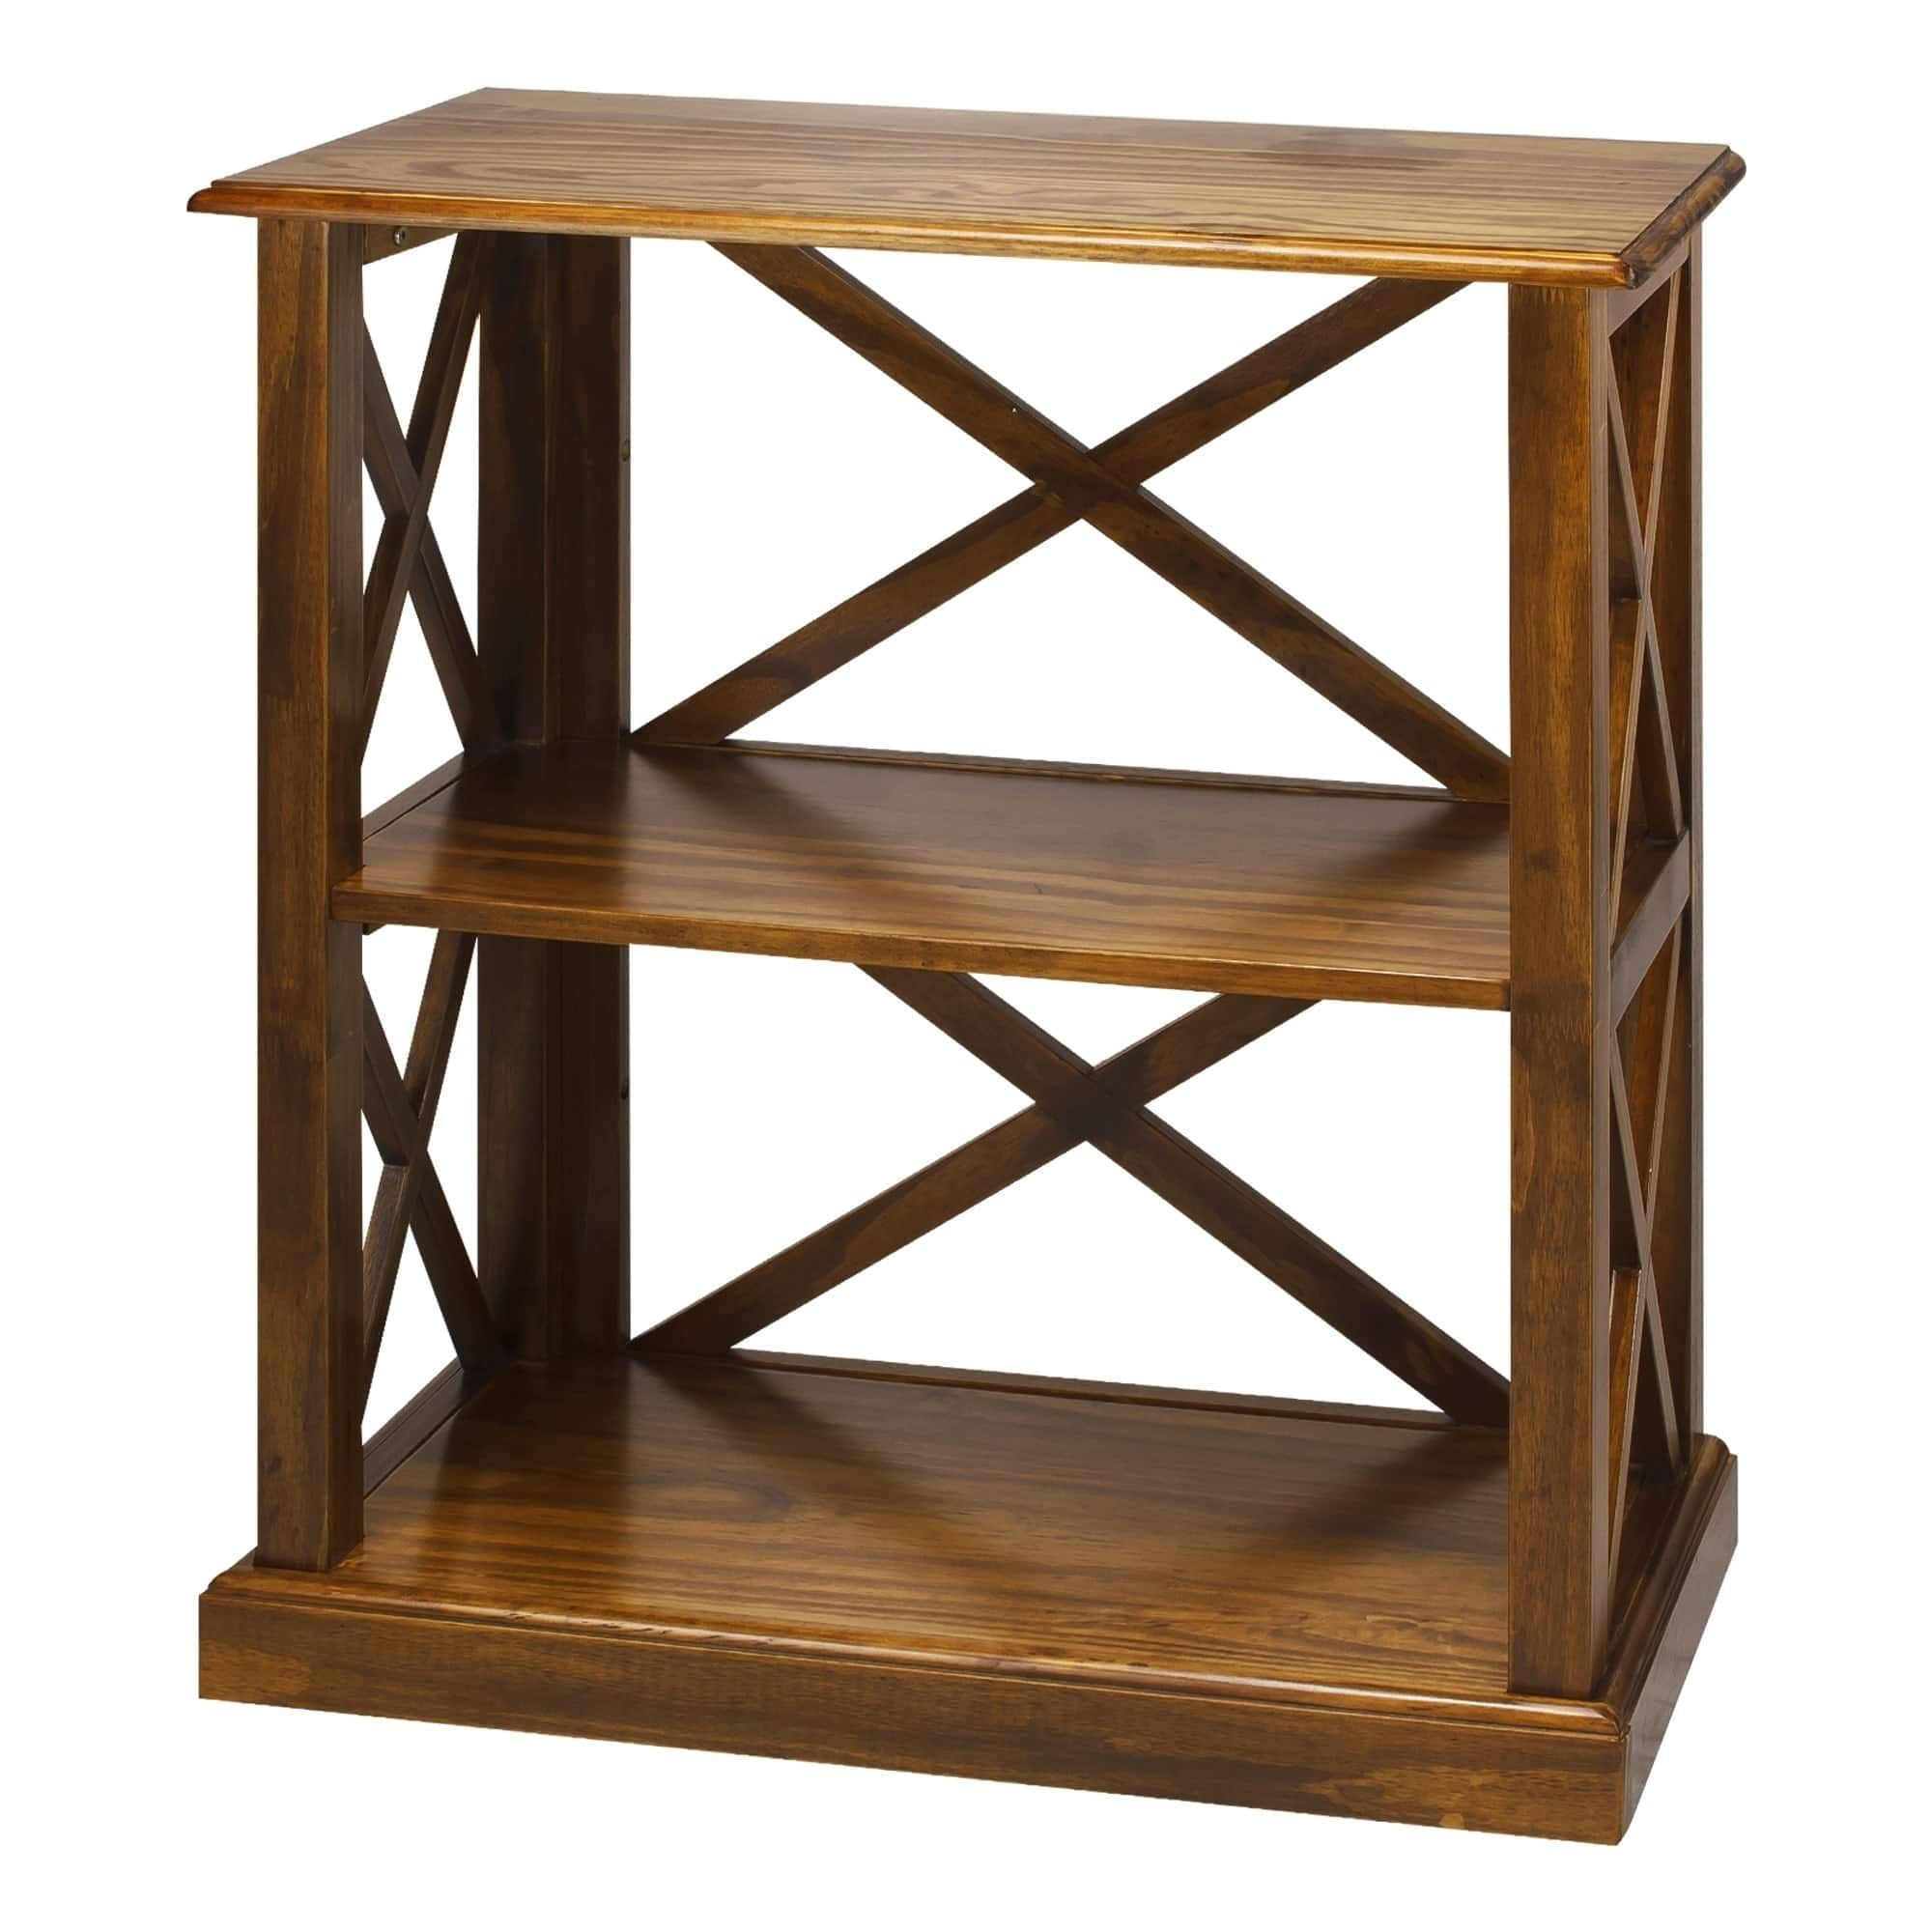 barcelona house open product top parker hayneedle inch bookcase master cfm bookcases shelf